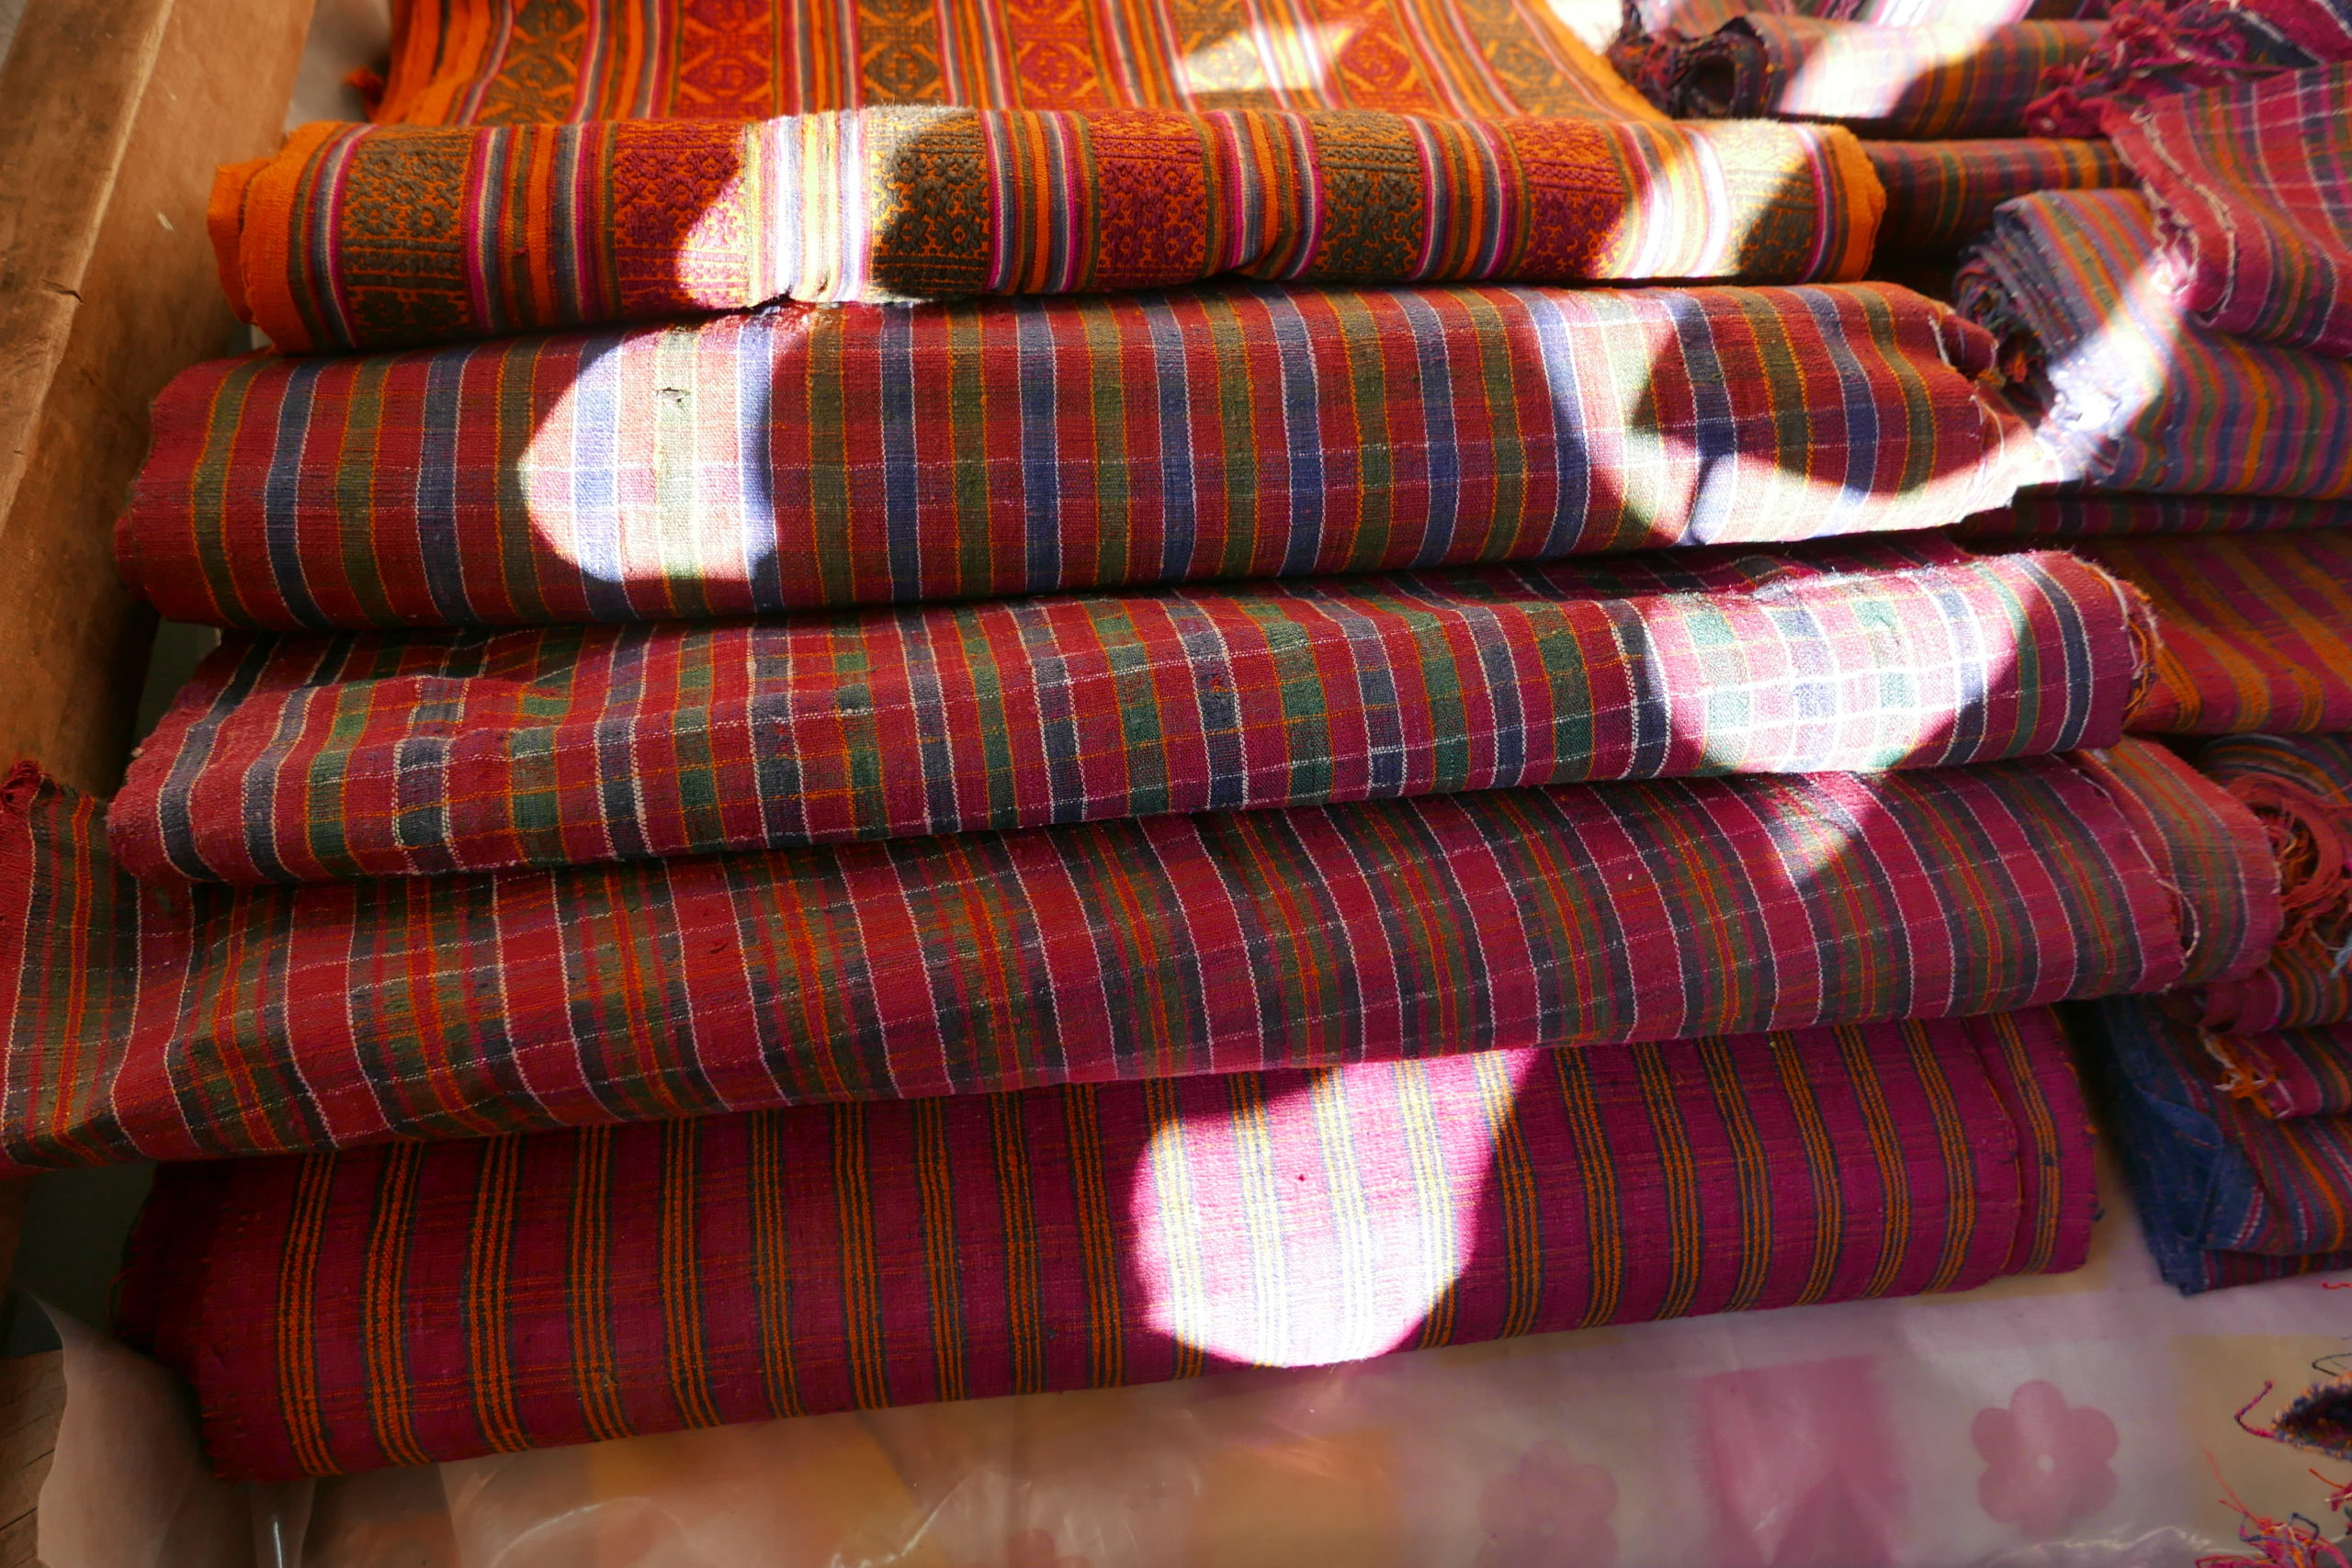 In Rhadi mainly raw silk from Assam is processed into robust everyday fabrics. Red, orange, green and blue tones can be produced from plants and minerals that are regionally found in nature.